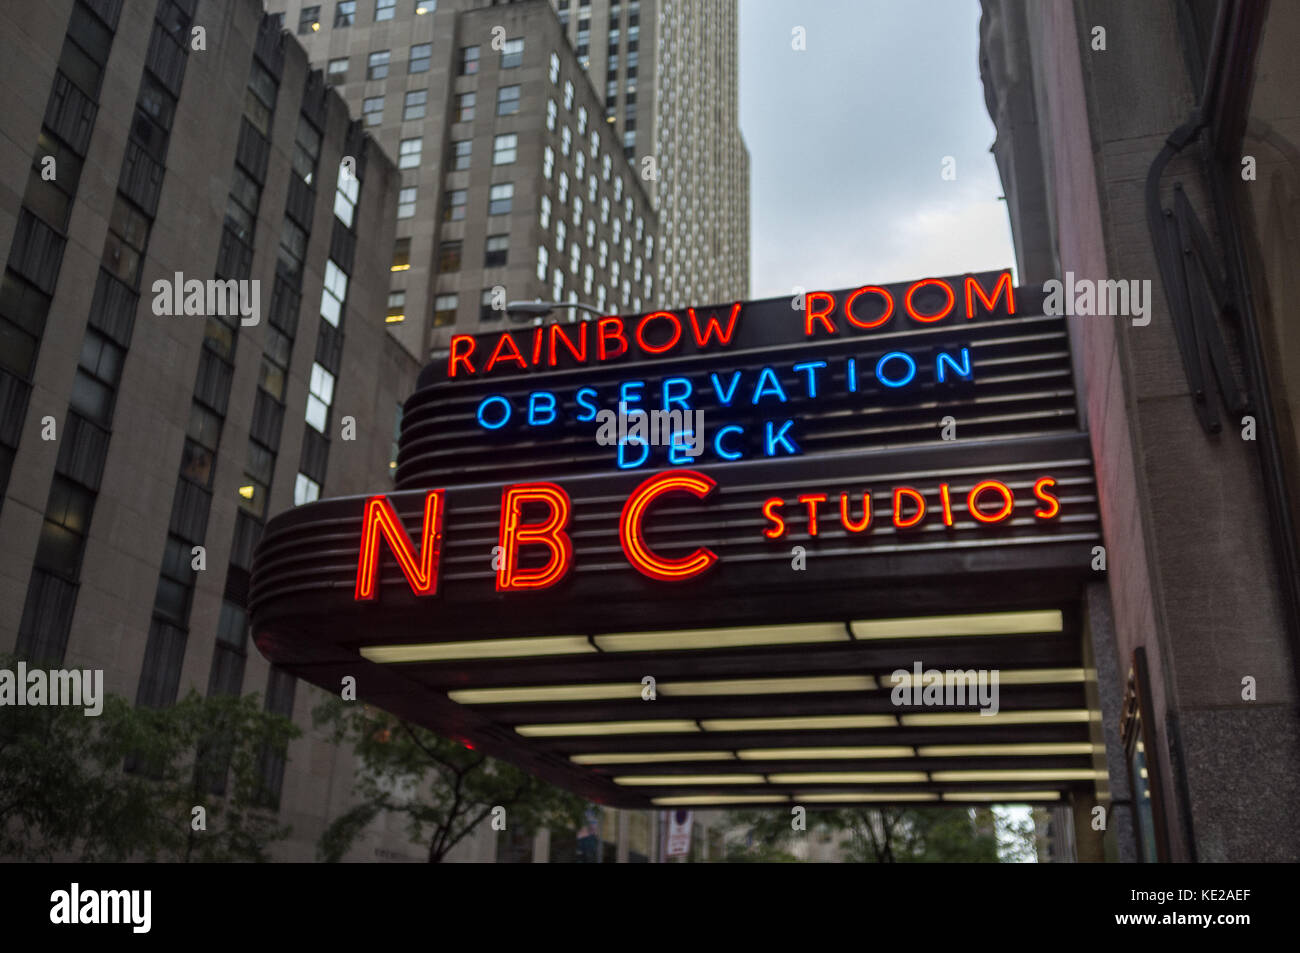 Sign indicating the entrance to the Observation Deck at the NBC Studios at the Rockerfeller Center, New York City. - Stock Image